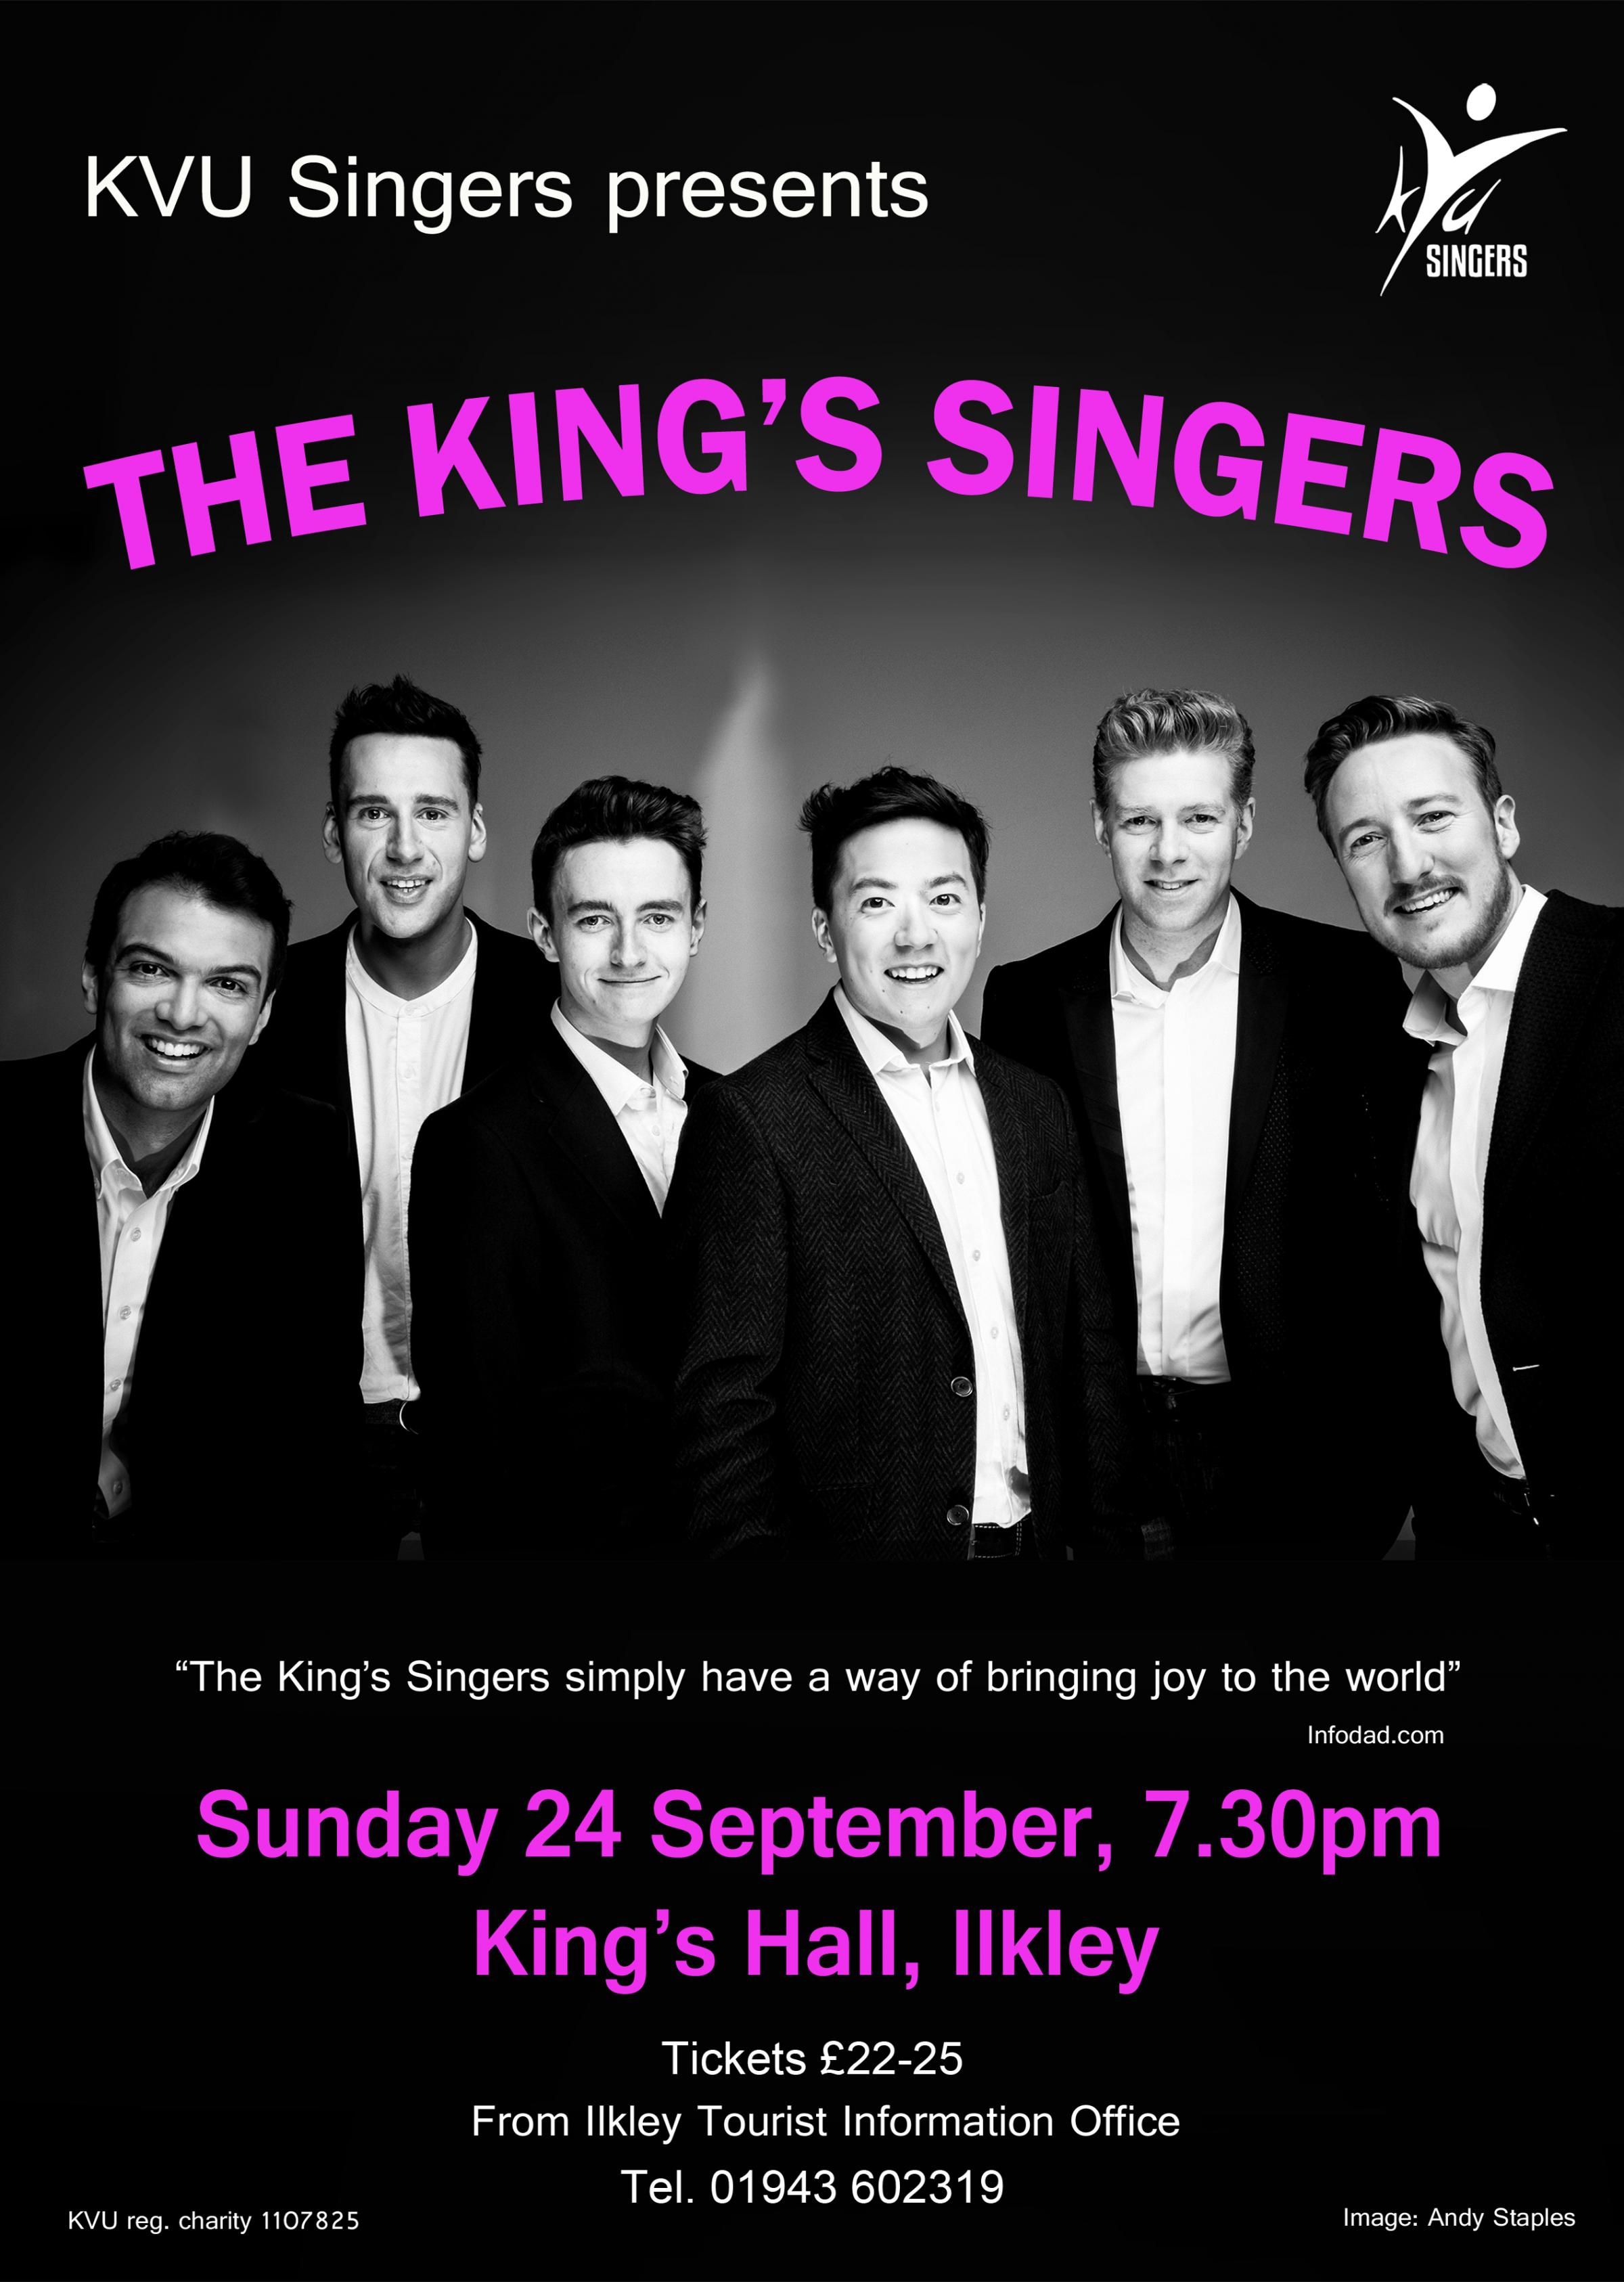 KVU Singers present The King's Singers